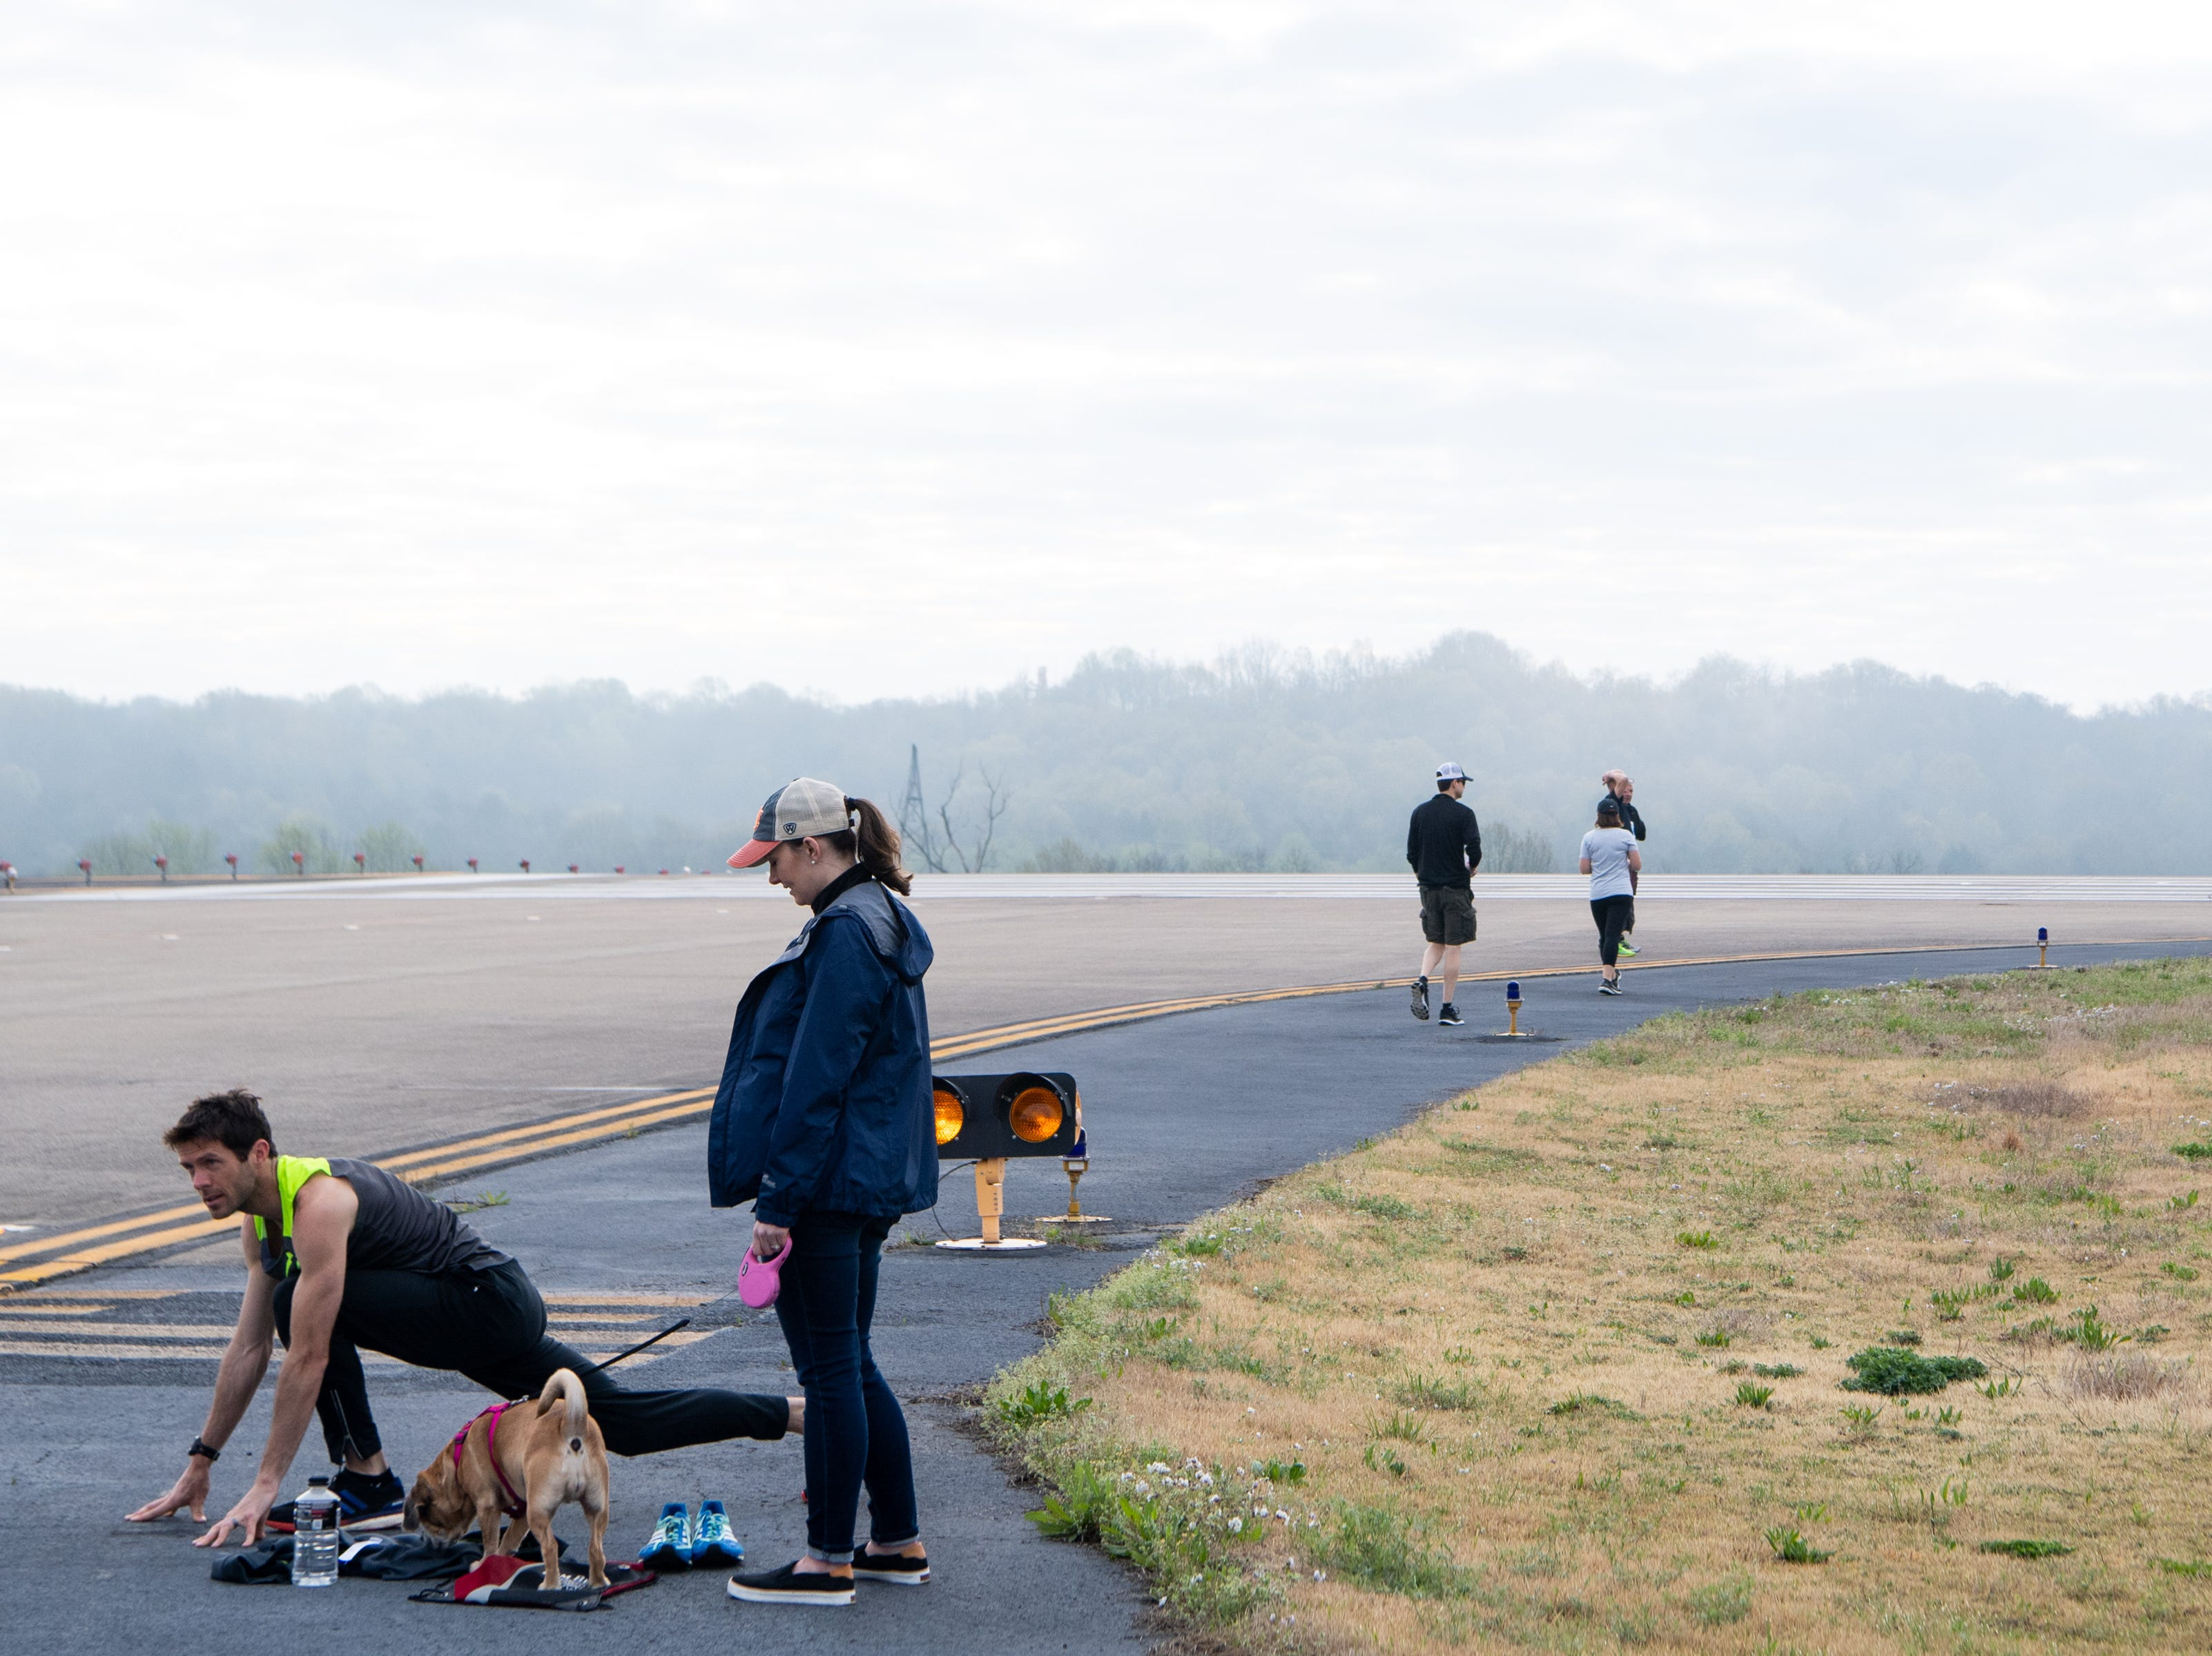 Ryan Snellen warms up with support from Brittany Snellen and their dog, Render, during the BNA 5K on the Runway at Nashville International Airport on Runway 2R/20L Saturday, April 6, 2019, in Nashville, Tenn.